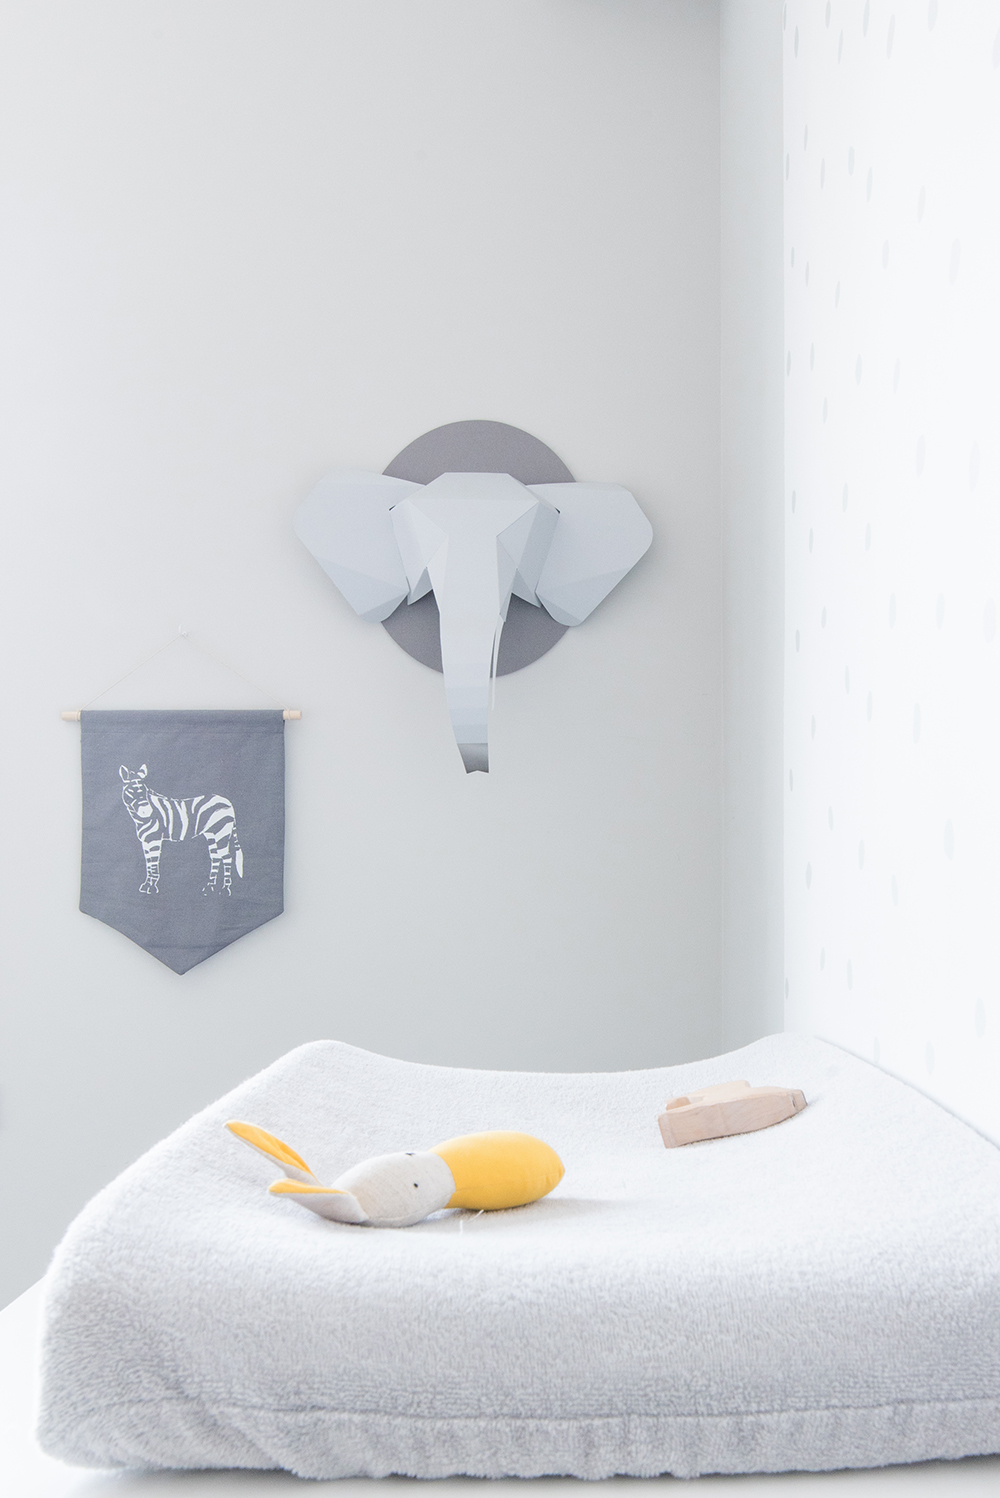 Péa les maisons. Changing table organization ideas with wall stickers and amazing wall decorations (zebra and elephant)